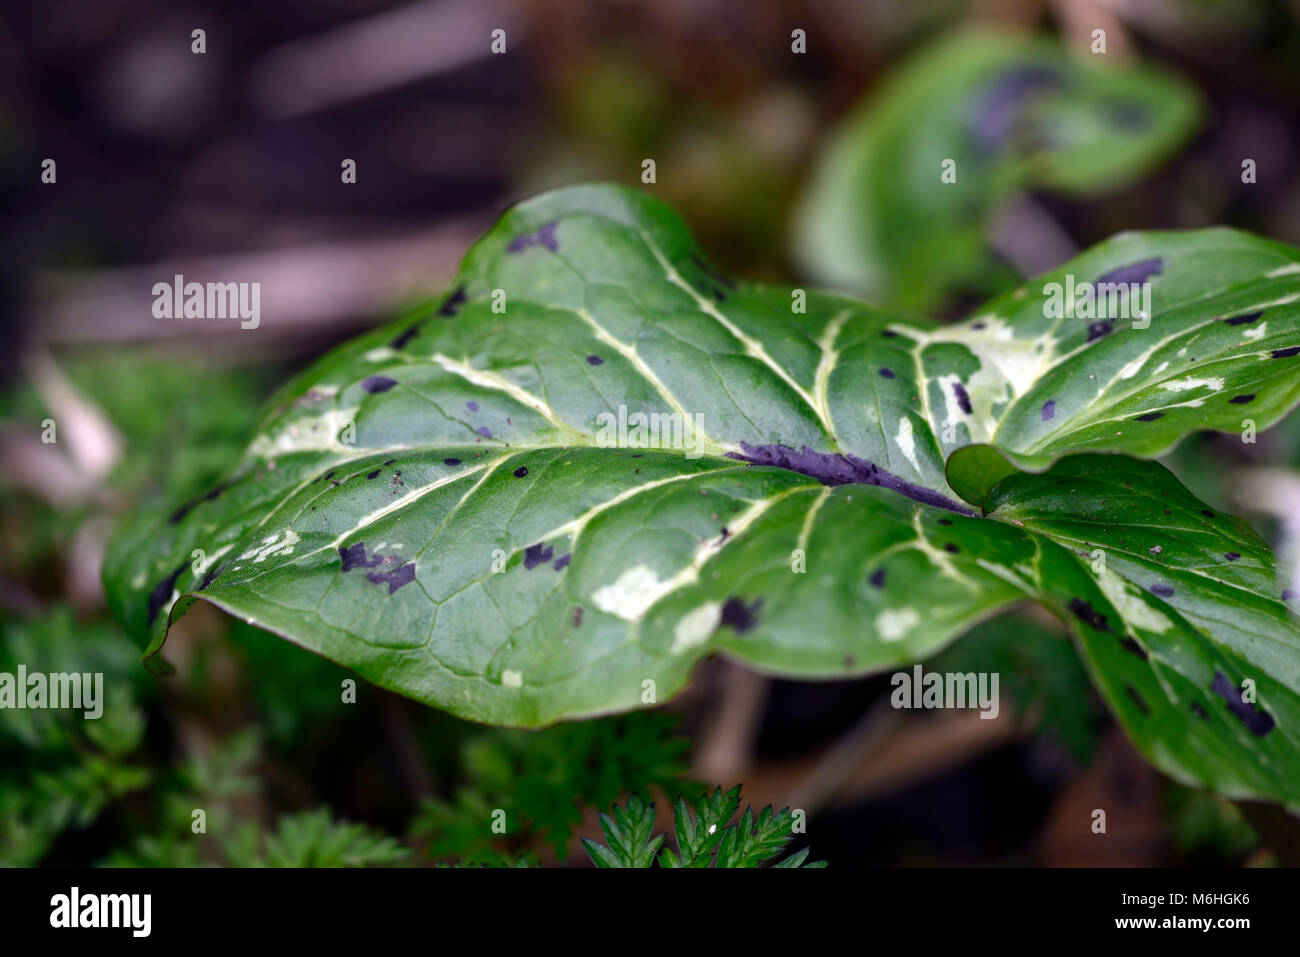 arum italicum subsp italicum spotted jack, mottled, spotted, leaves, foliage, Green, White, variegated, lords and - Stock Image